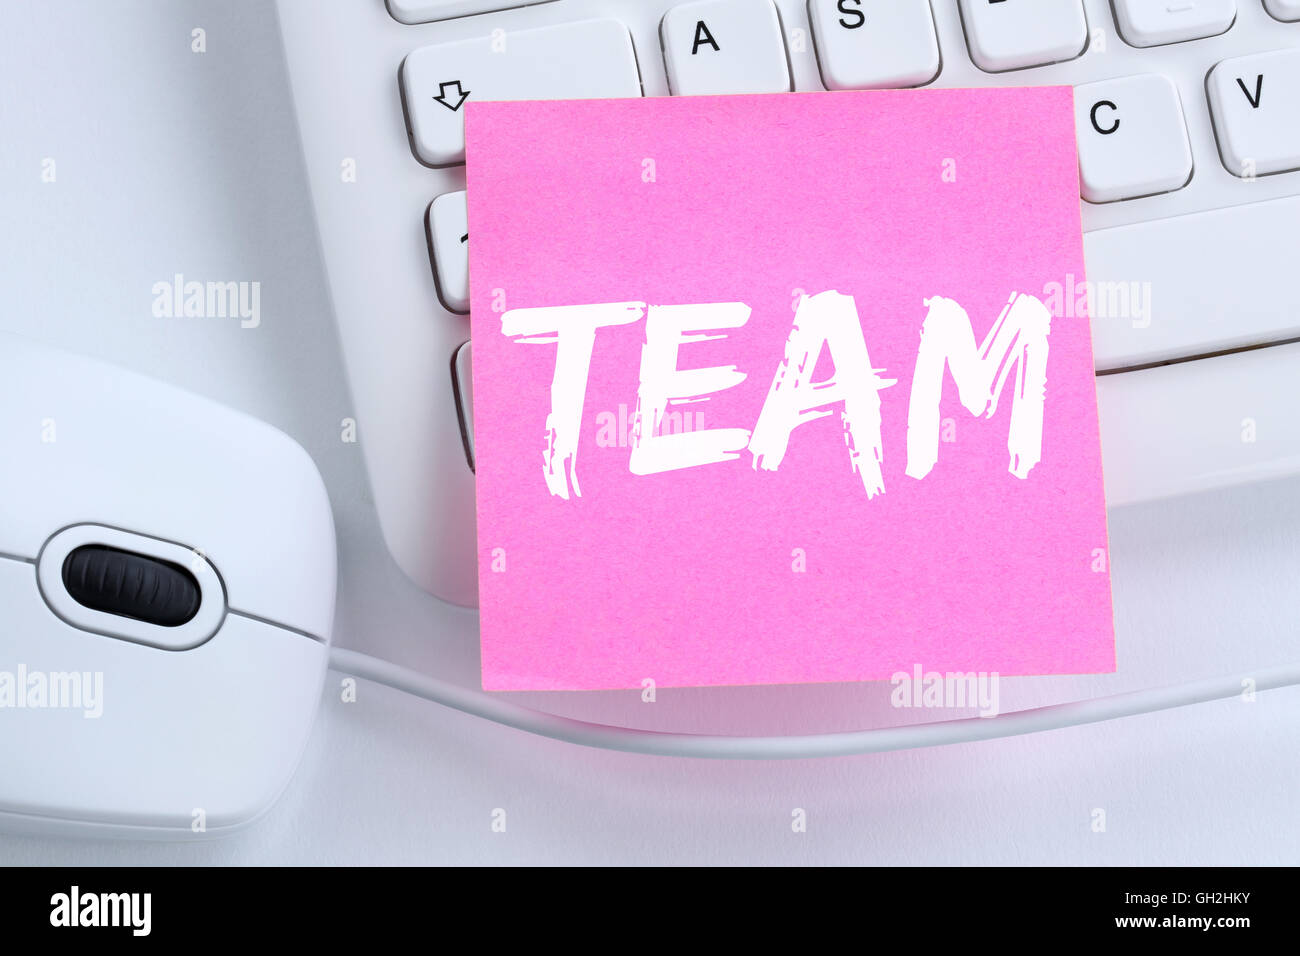 Team teamwork working together business concept office computer keyboard - Stock Image